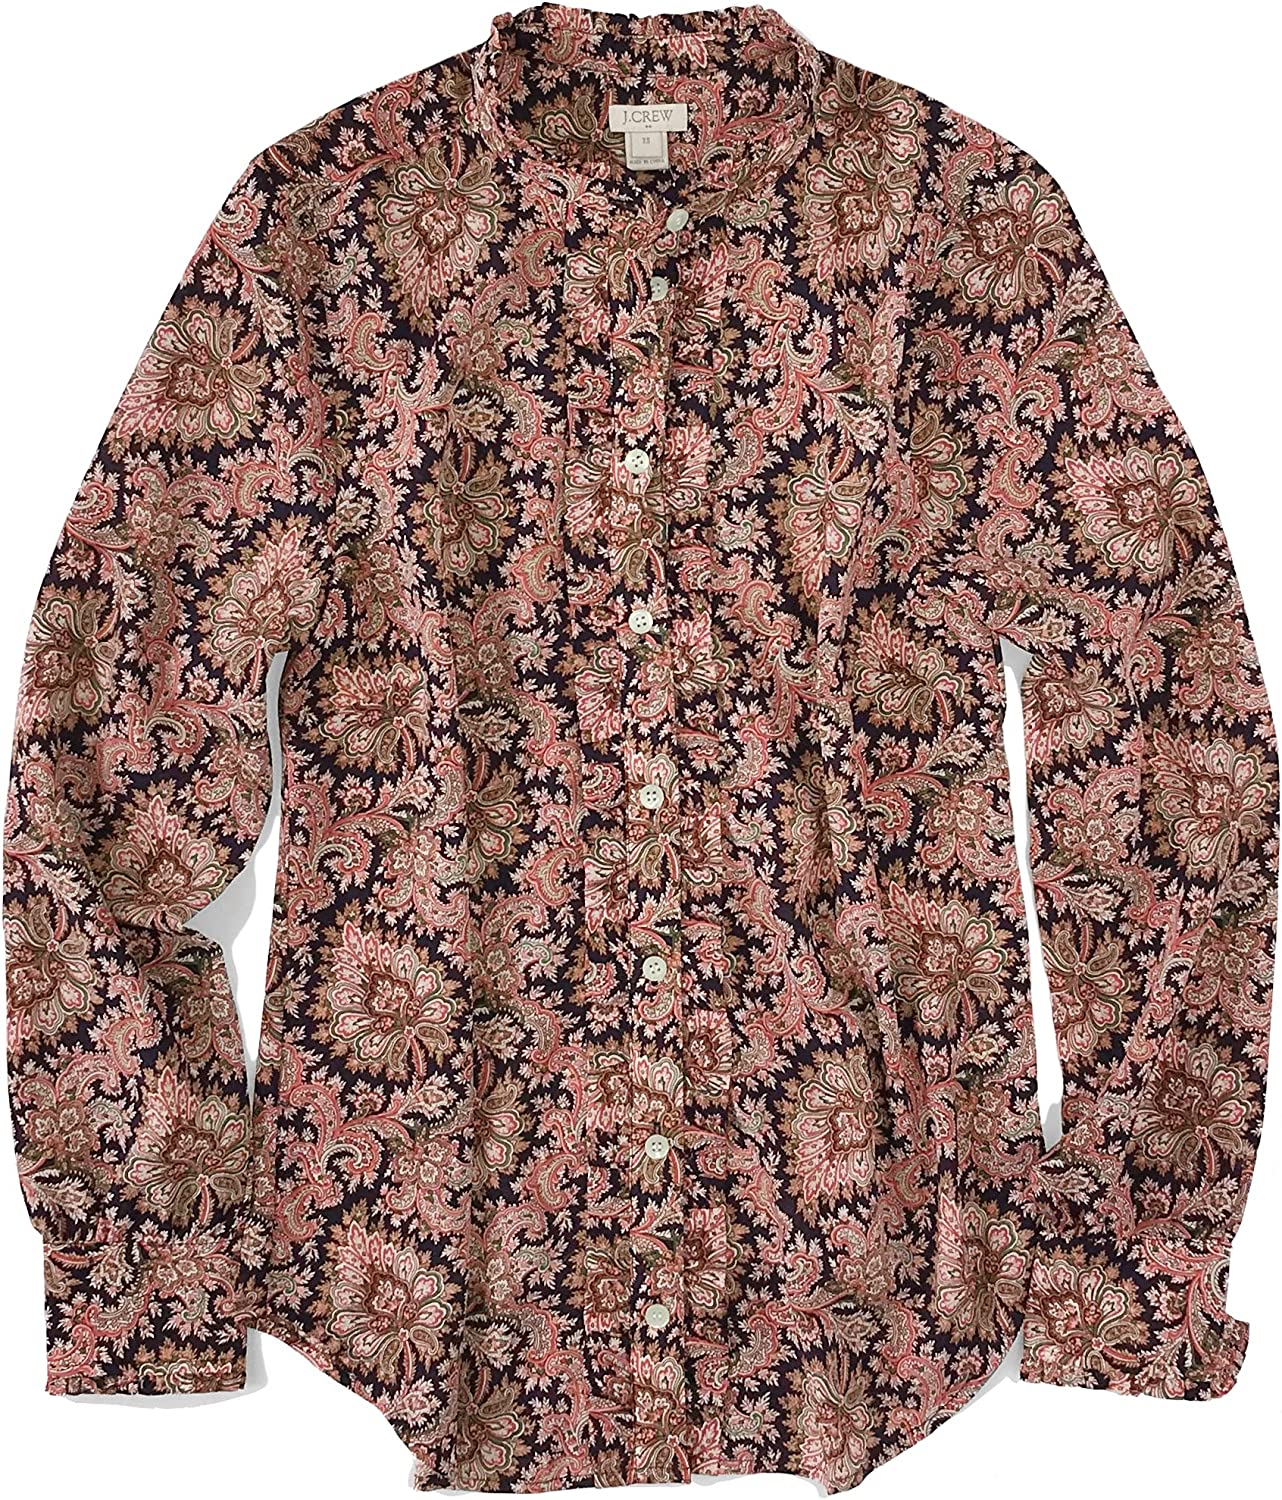 J Crew Factory Women's LightWeight Paisley Ruffle Blouse Navy Coral